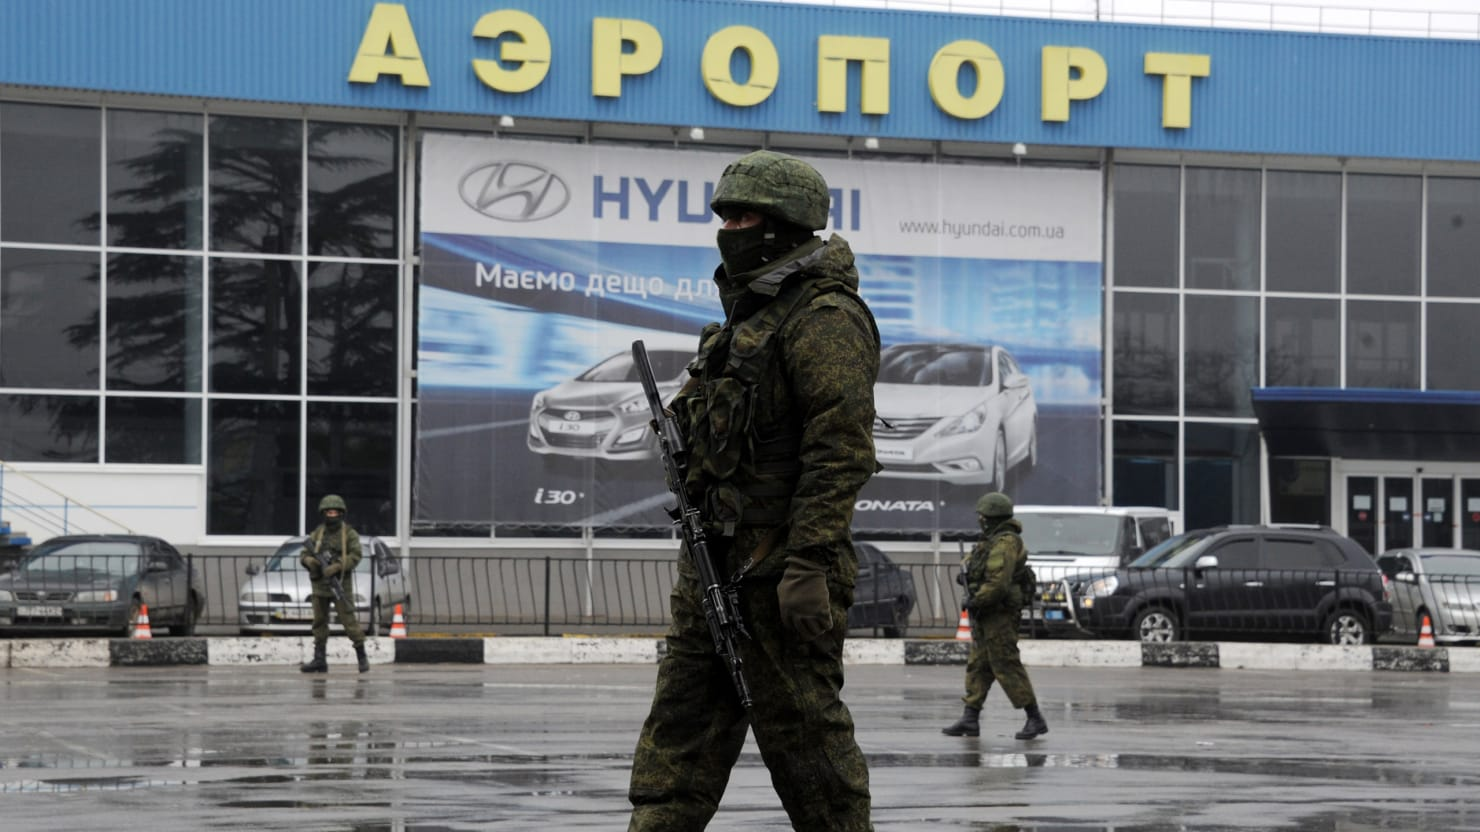 Exclusive: Russian 'Blackwater' Takes Over Ukraine Airport